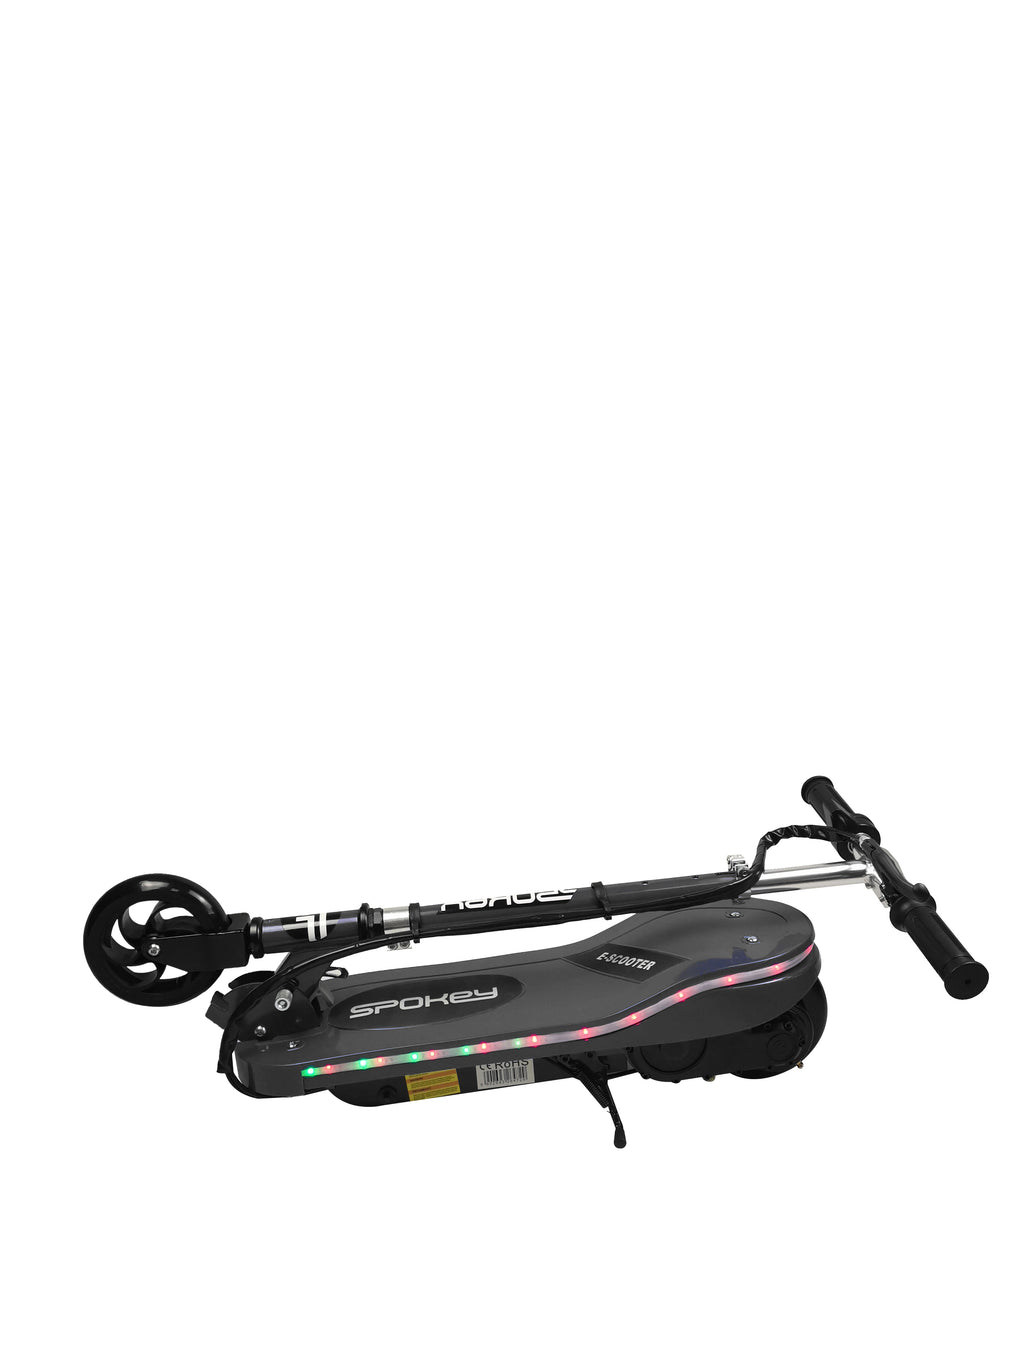 RICCO Kids 24V Electric Scooter e-Scooter Ride On with LED Flashing Lights (Model:CD05) BLACK